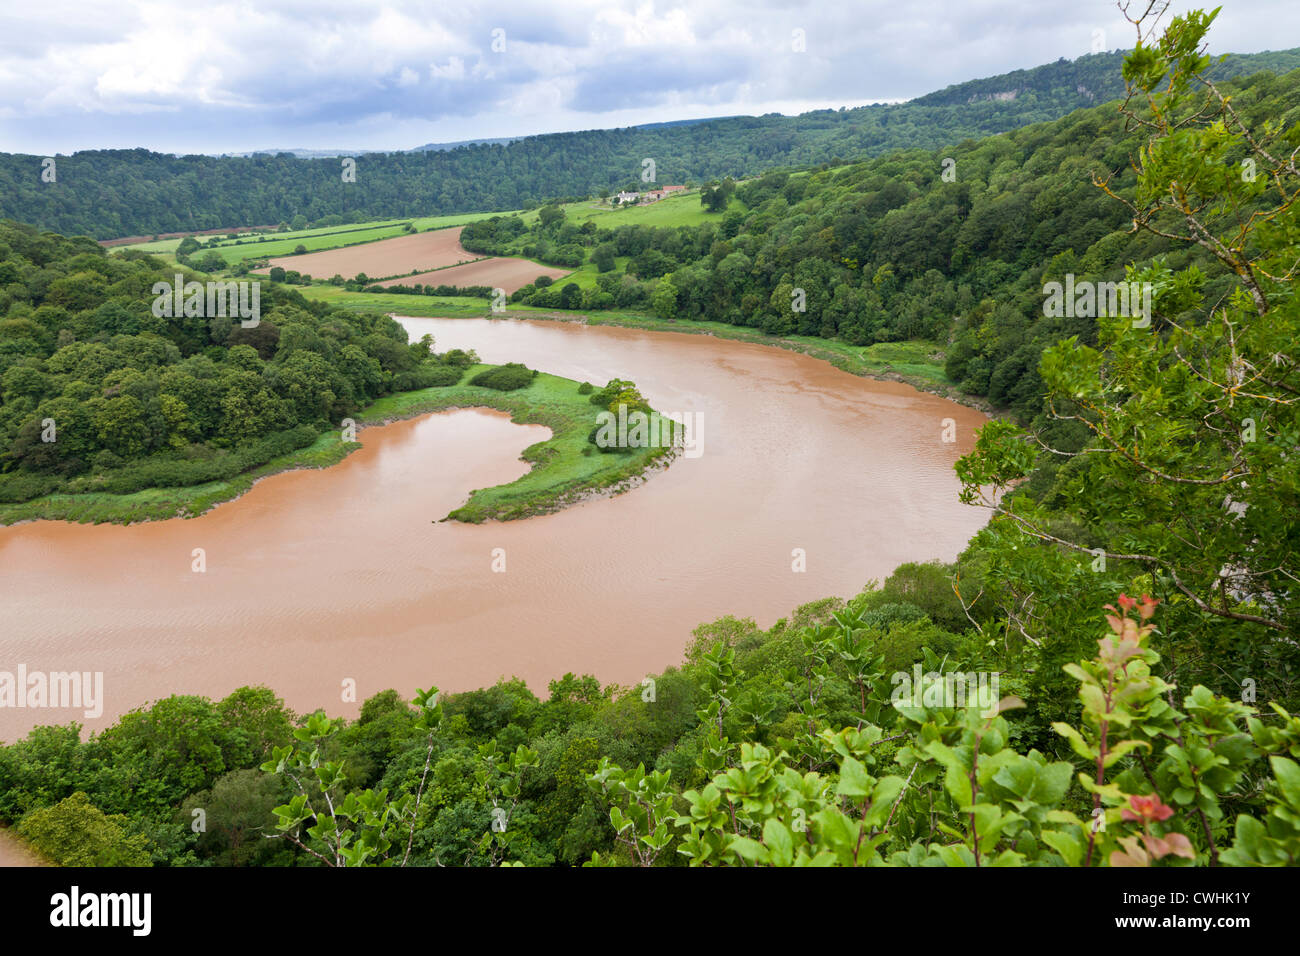 A sharp bend in the River Wye at high water viewed from Wintours Leap in the Forest of Dean, Gloucestershire, UK - Stock Image